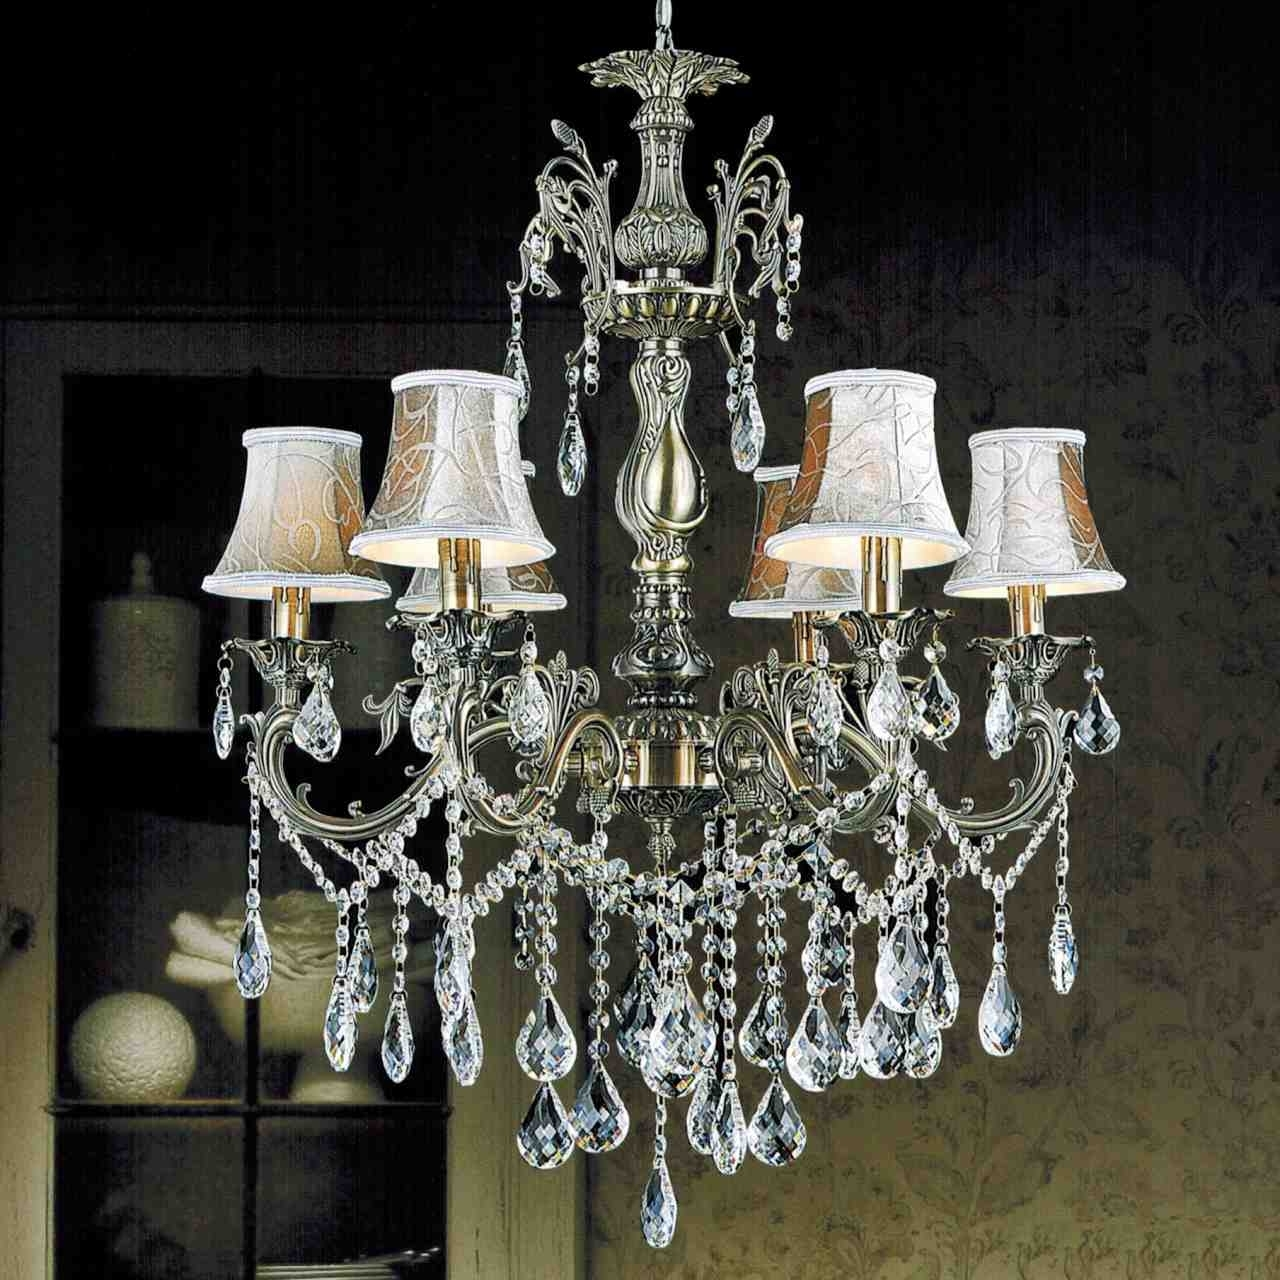 Brass And Crystal Chandeliers Regarding Most Current Brizzo Lighting Stores (View 5 of 20)